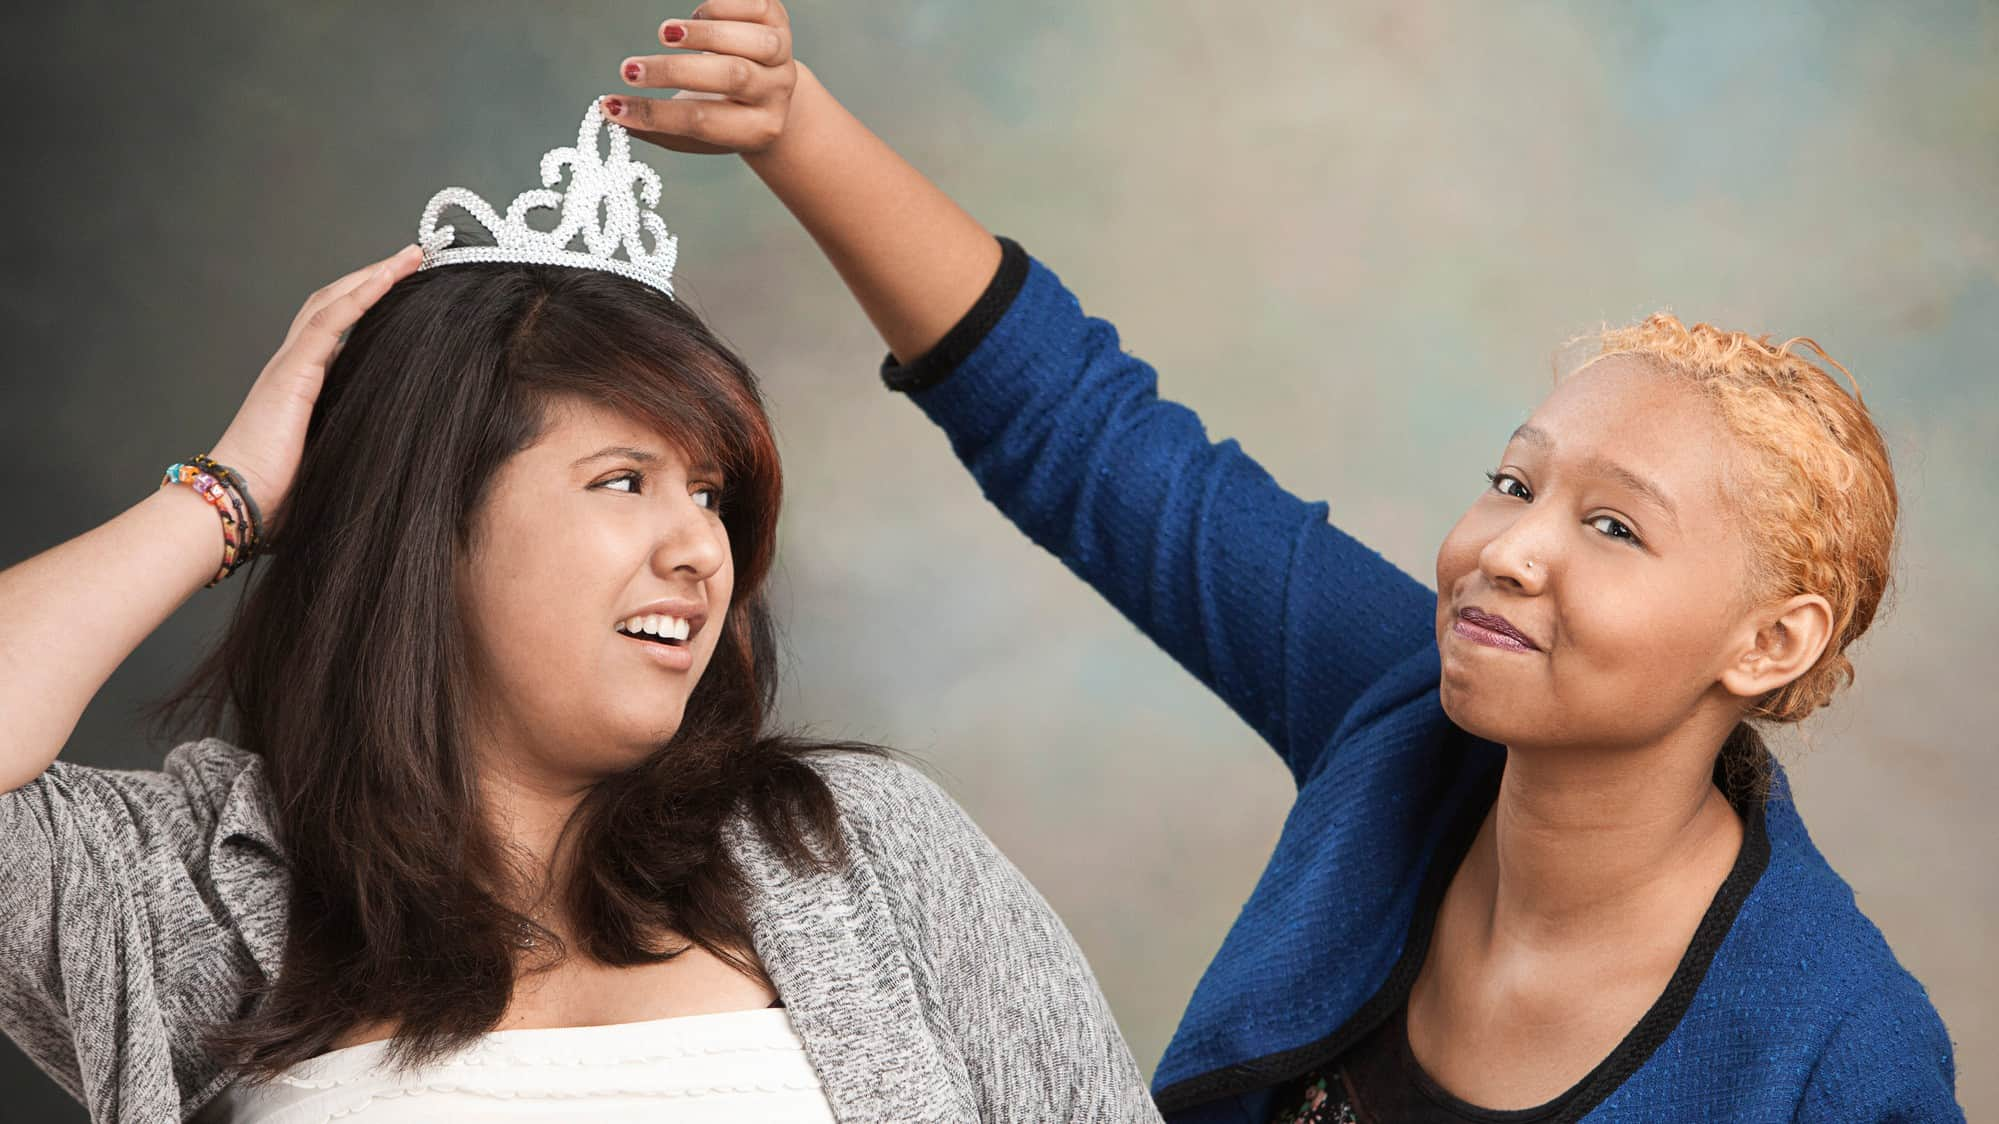 A young woman holds onto her crown as another moves to take it, indicating rival ASX shares